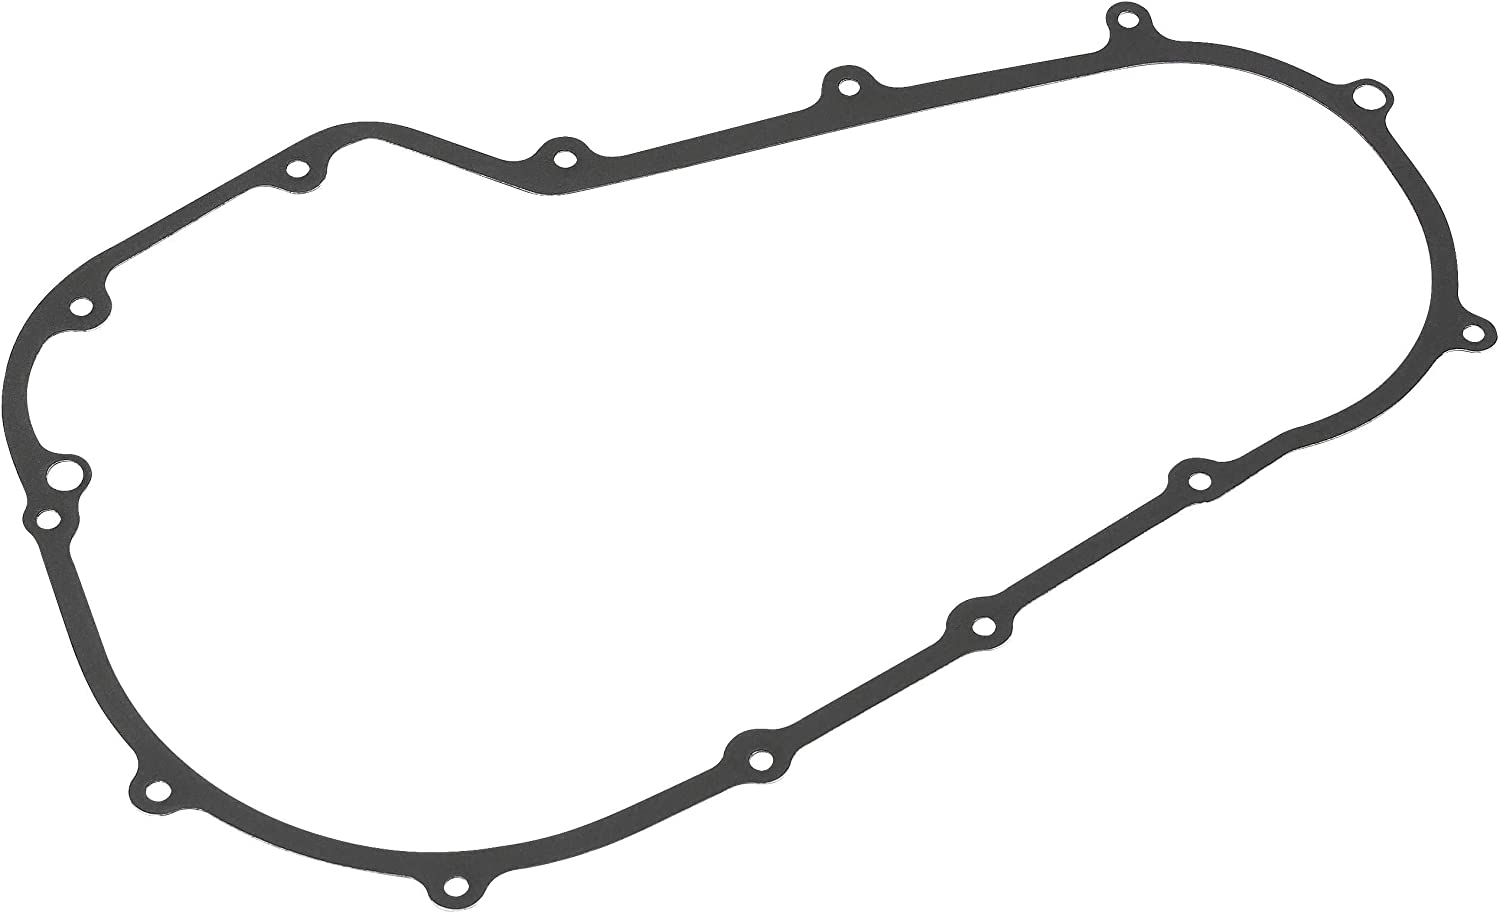 Cometic Gaskets 17-Up Flt Primary Cover Gasket C10198f1 New